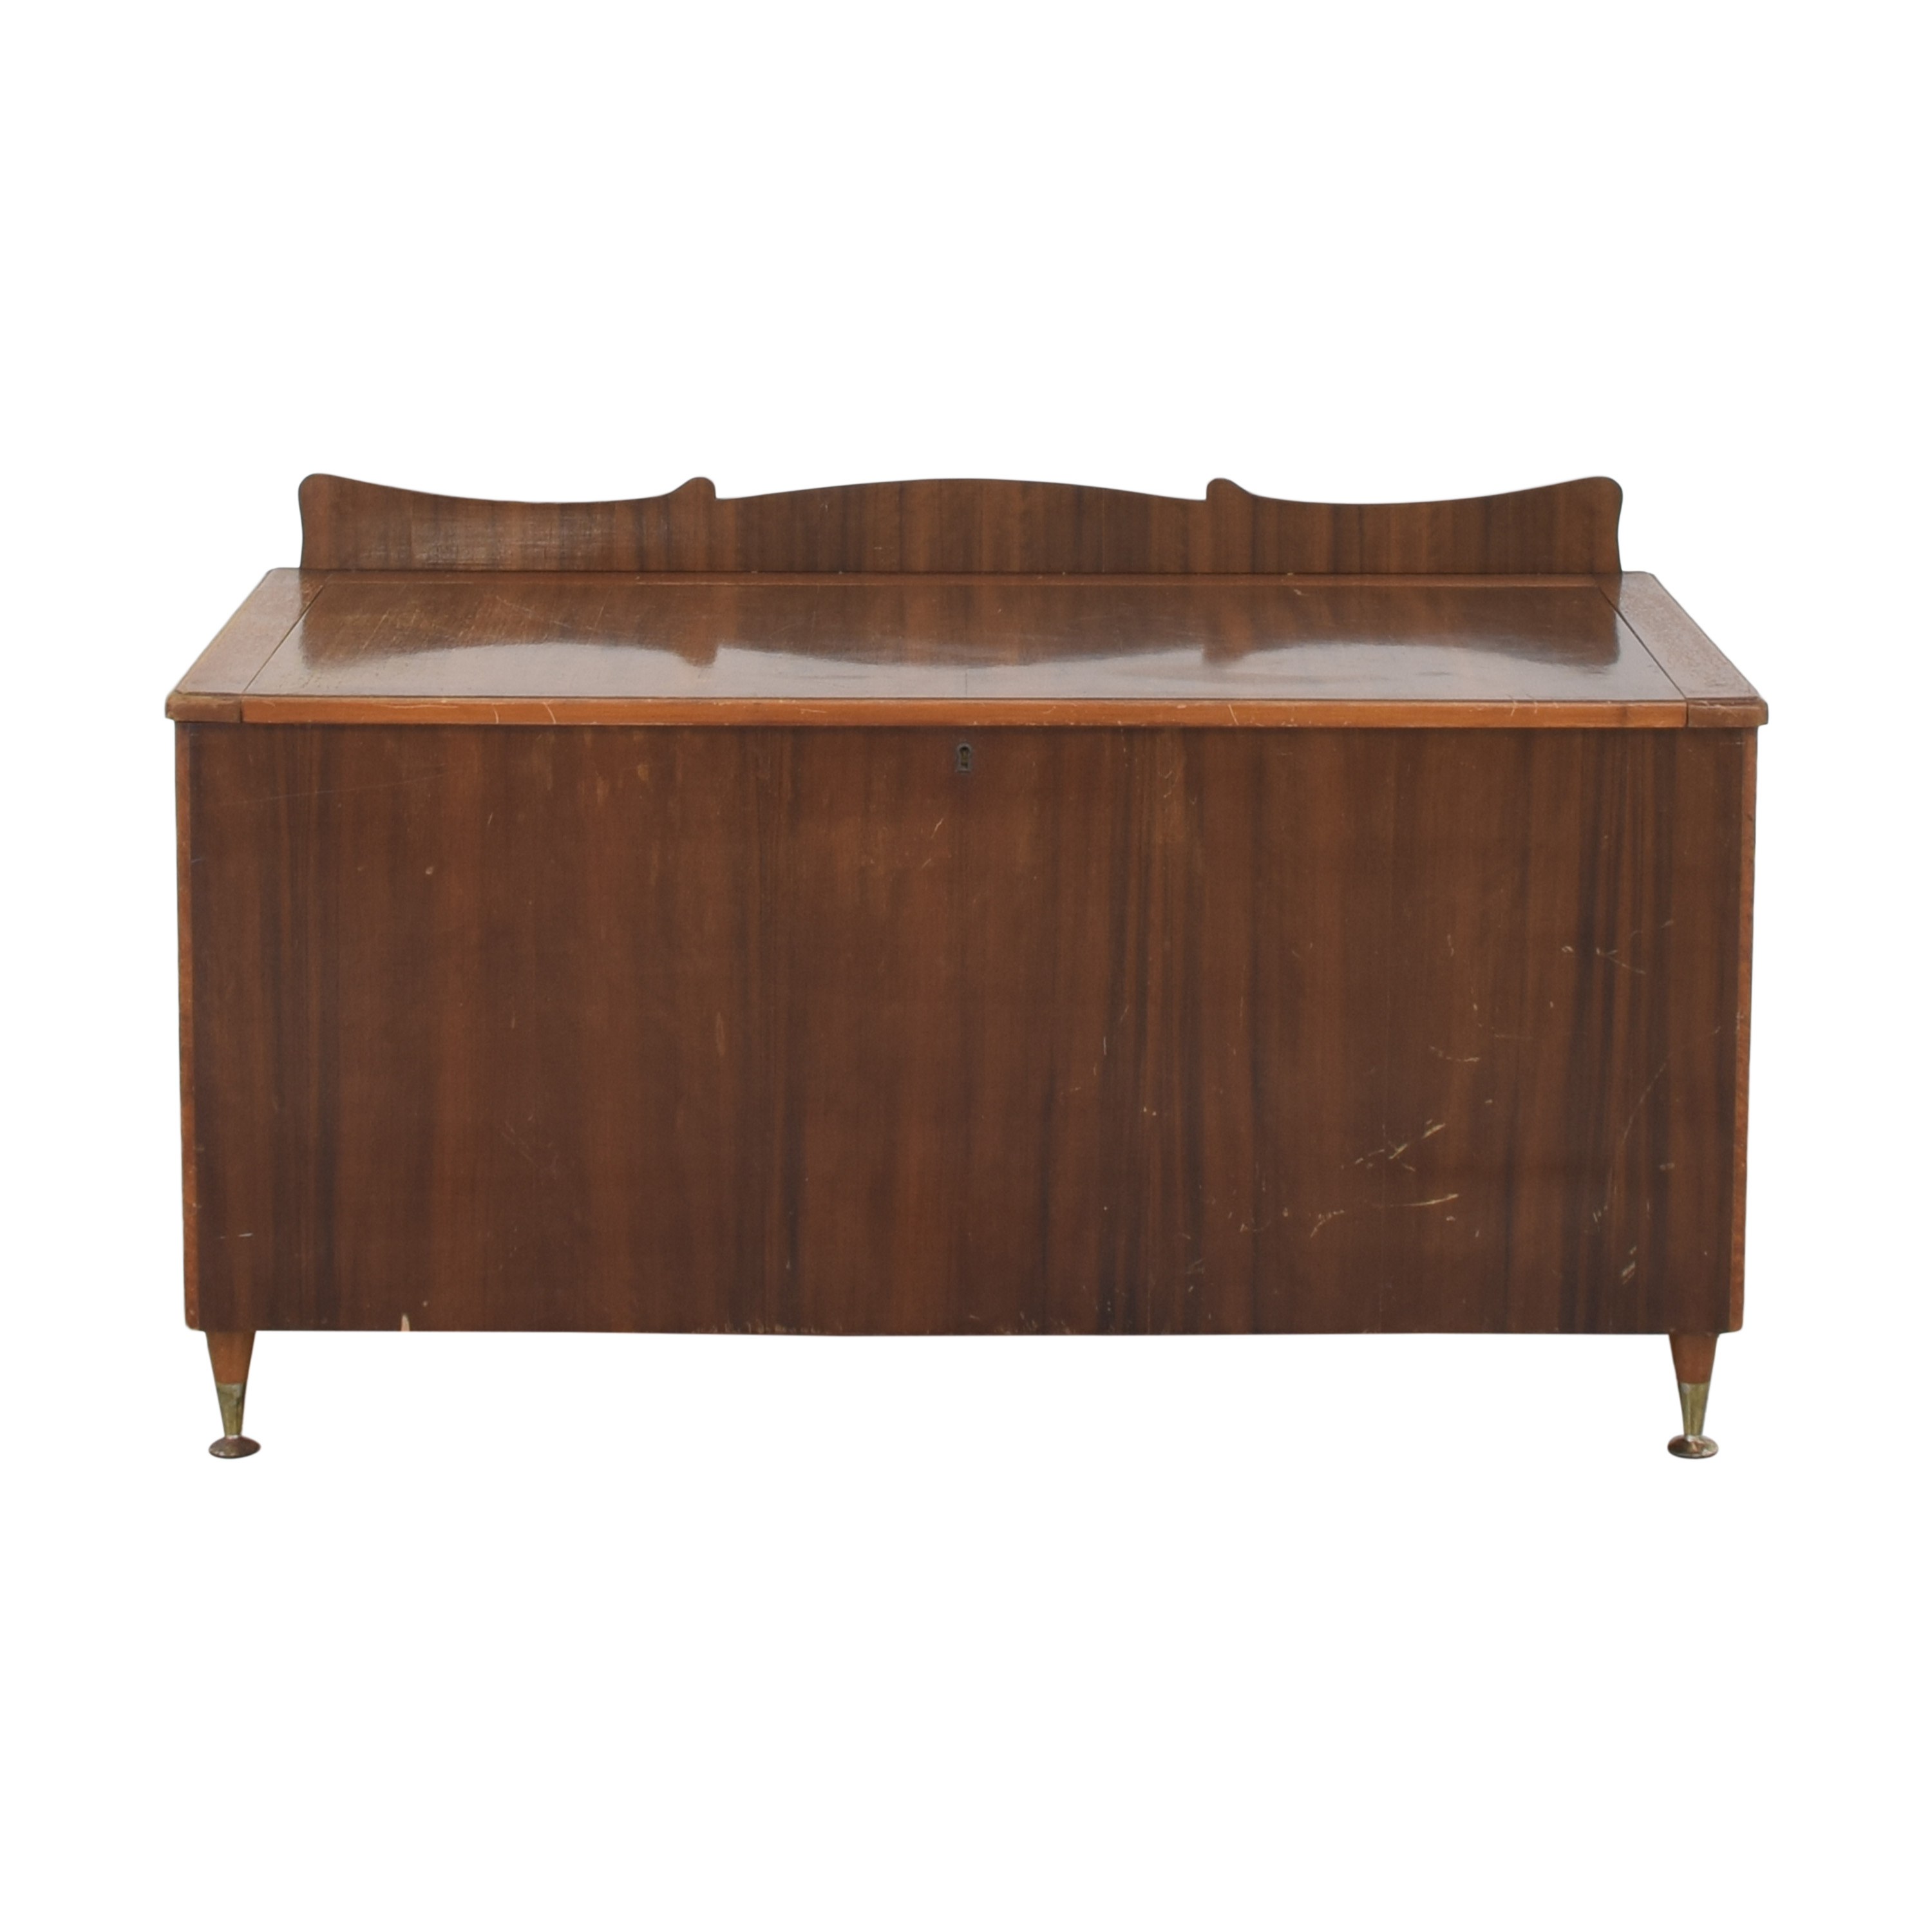 Vintage Mid Century Hope Chest for sale